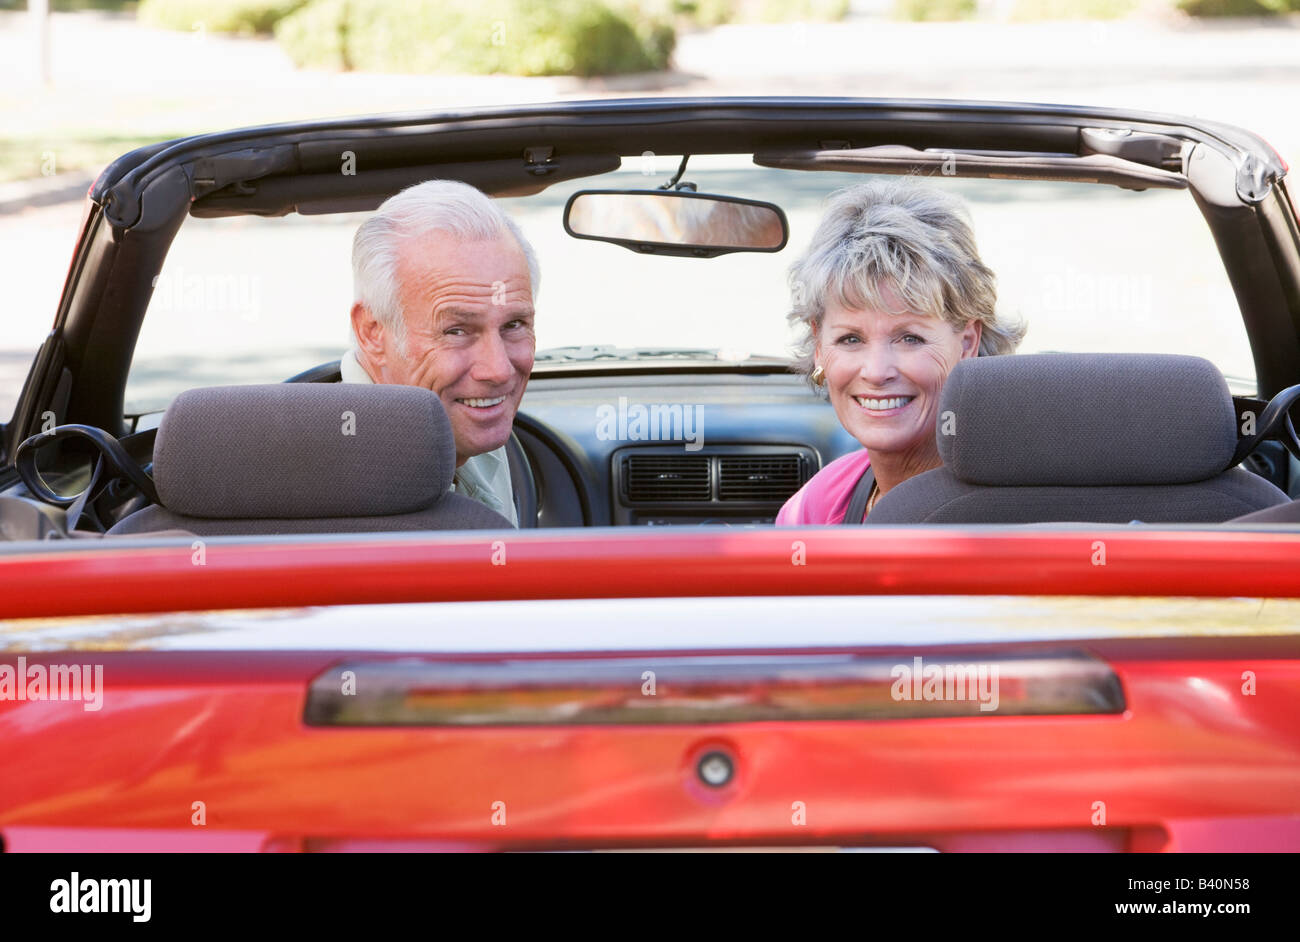 Couple in convertible car smiling - Stock Image